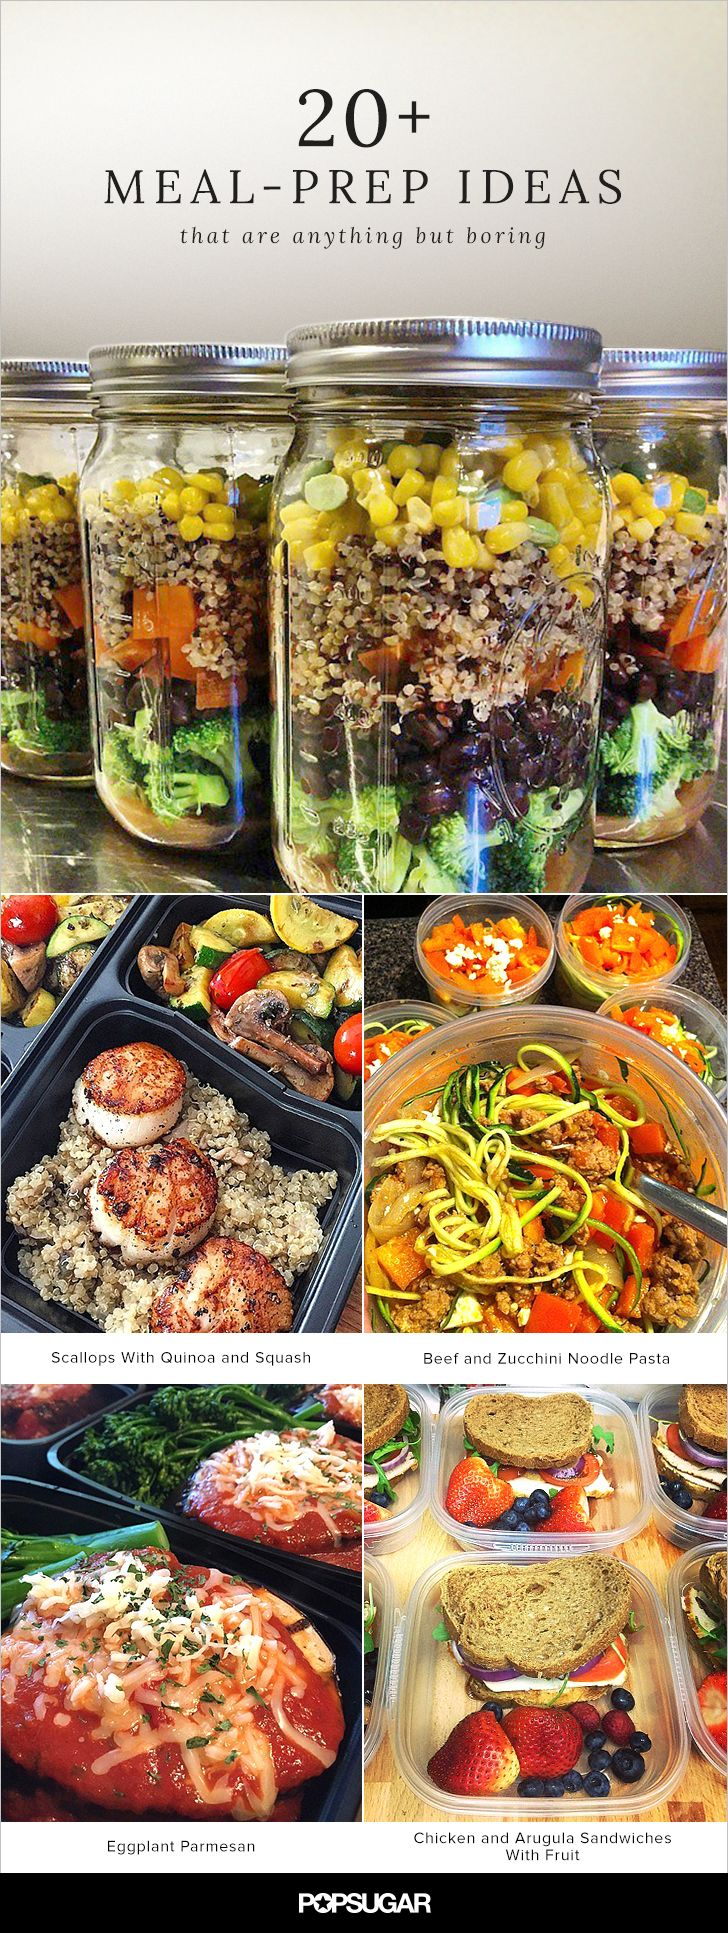 21 mealprep ideas that are anything but boring comida recetas y 21 mealprep ideas that are anything but boring forumfinder Choice Image